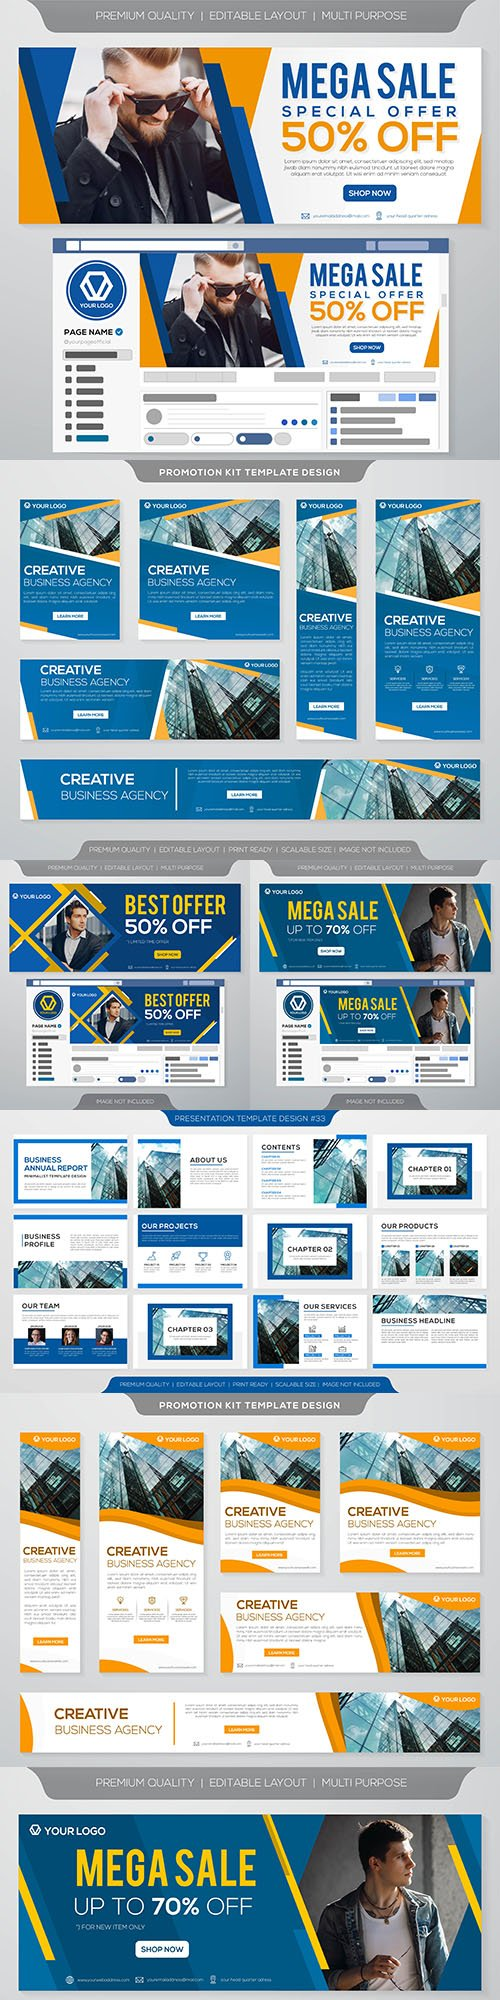 Presentation business and mega sale social media